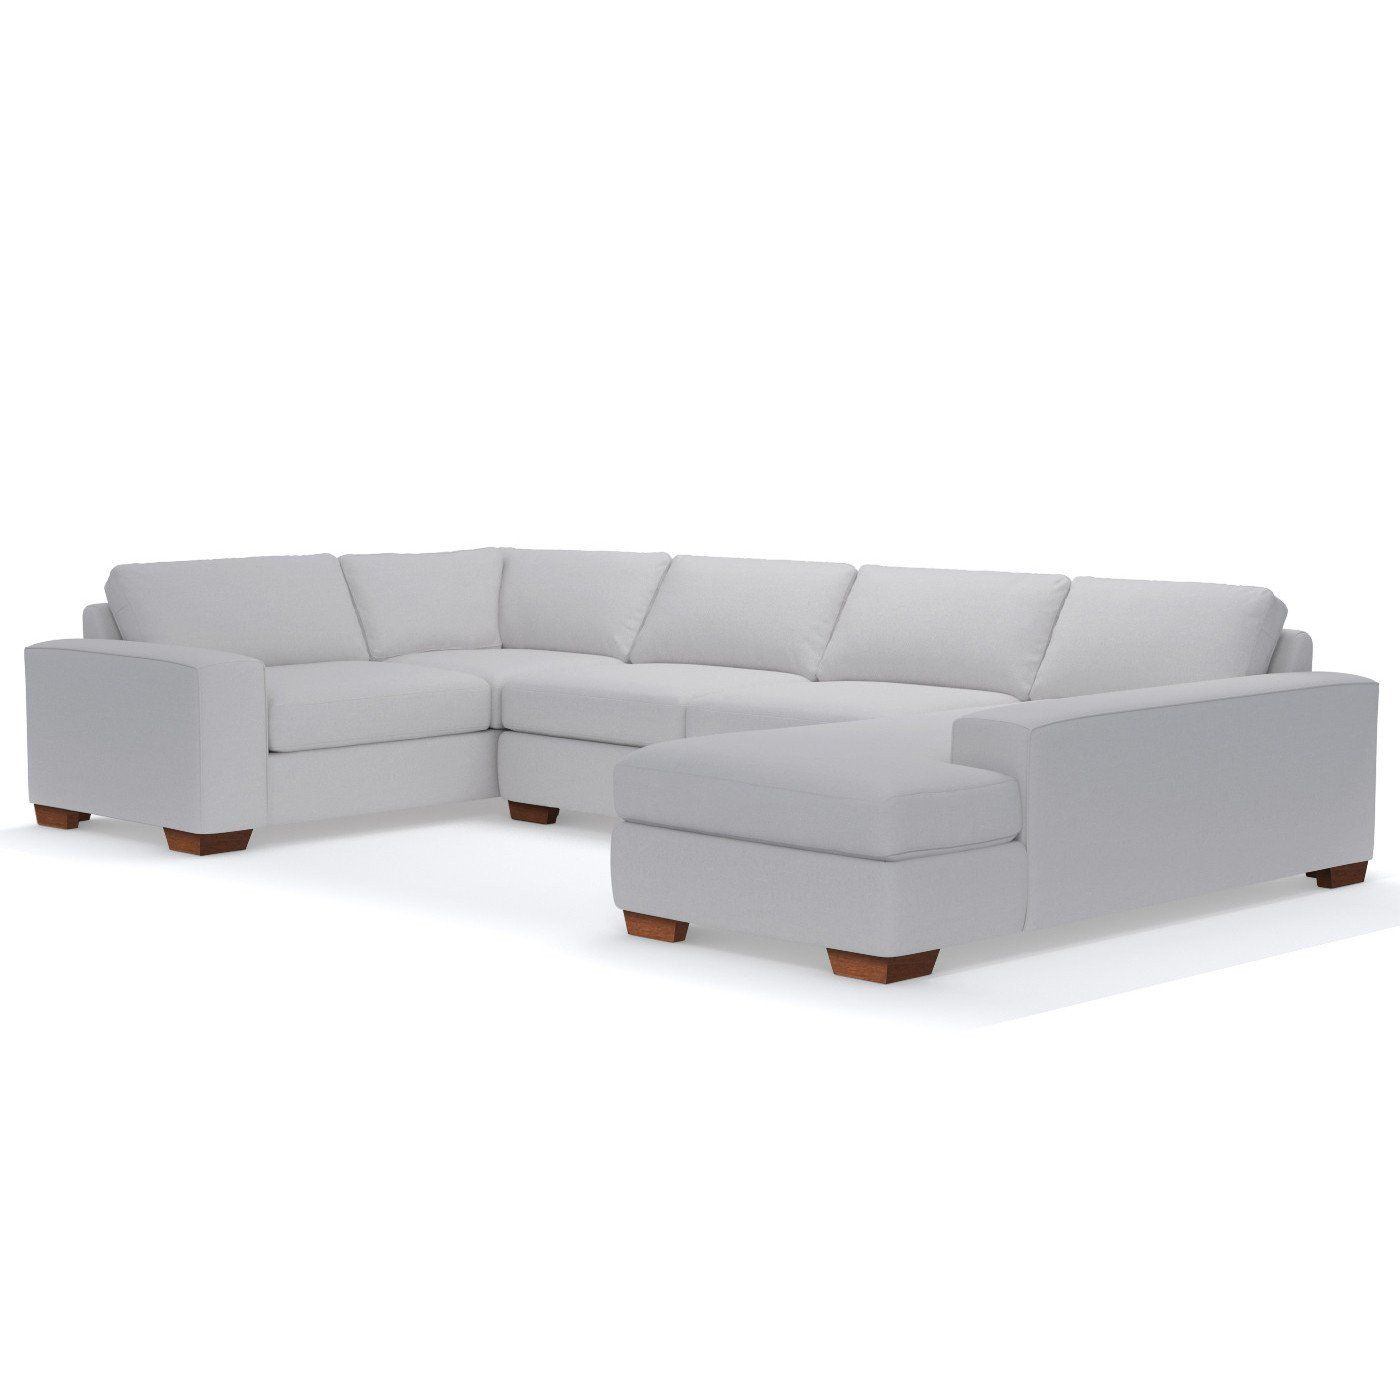 inspirational shop sofas for sectionals cushions appearance graphics pieces small couch room size sofa beige lounge ottoman striped sleeper collection corner sectional of comfortable chaise institution super furniture full with design microfiber and piece l brown living layout